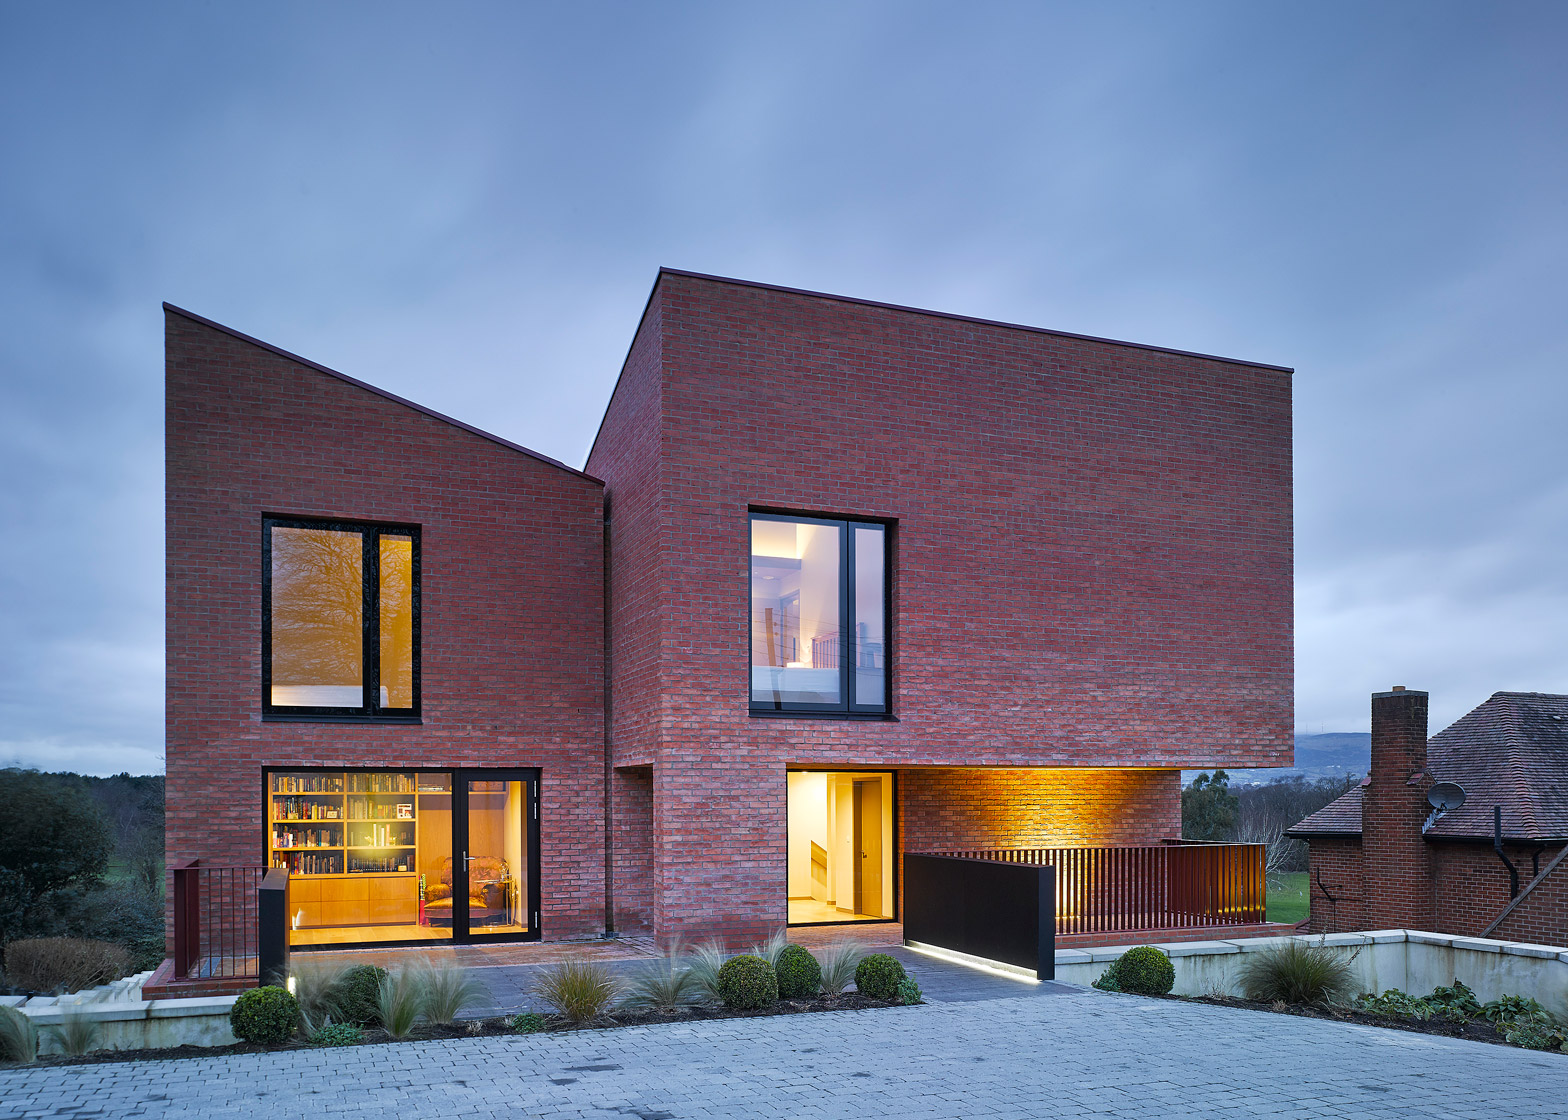 ^ Hall McKnight's hurch oad house is three brick blocks